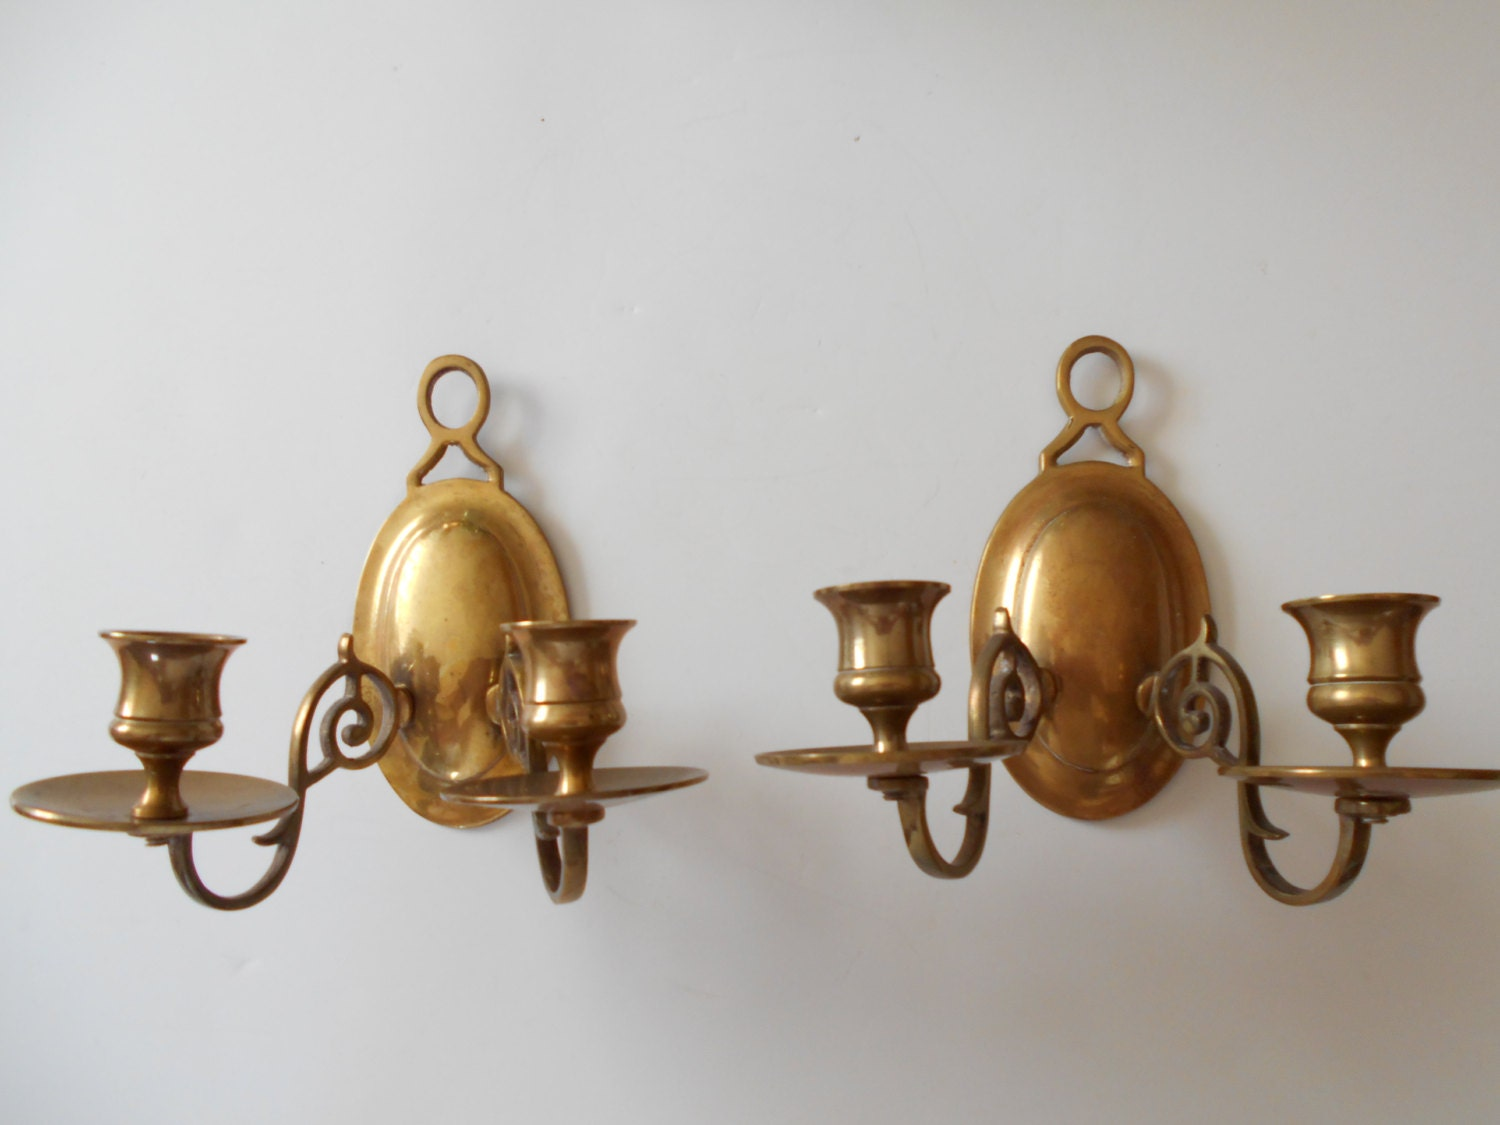 Solid Brass Wall Sconces or Candle Holders Set of Two